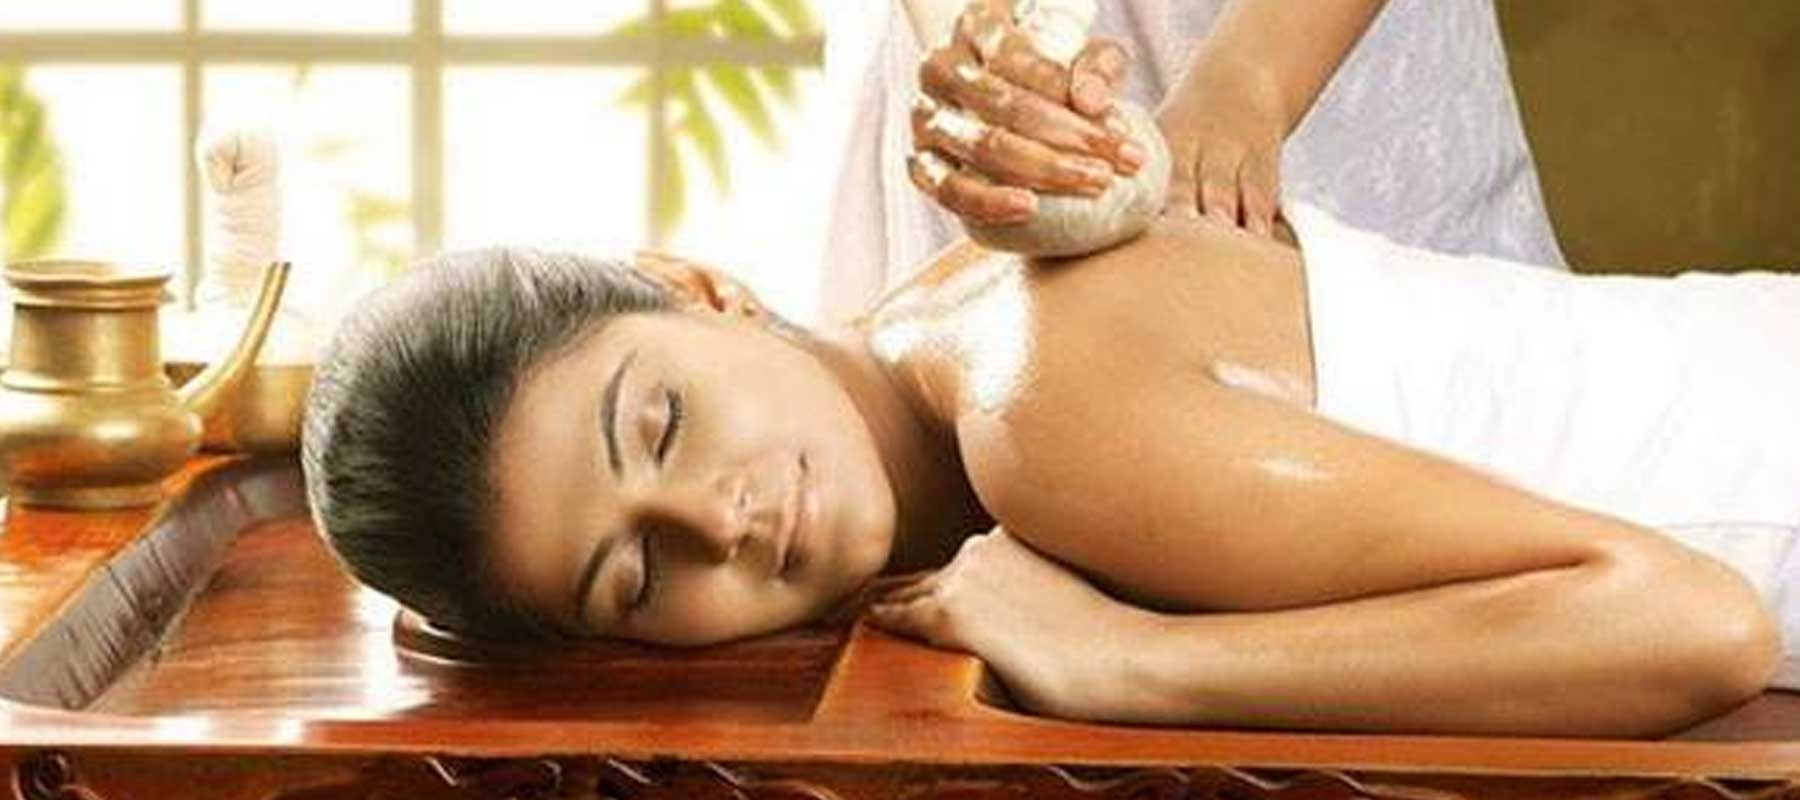 Kerala-Massage-Center--in-Qatar-kizhi